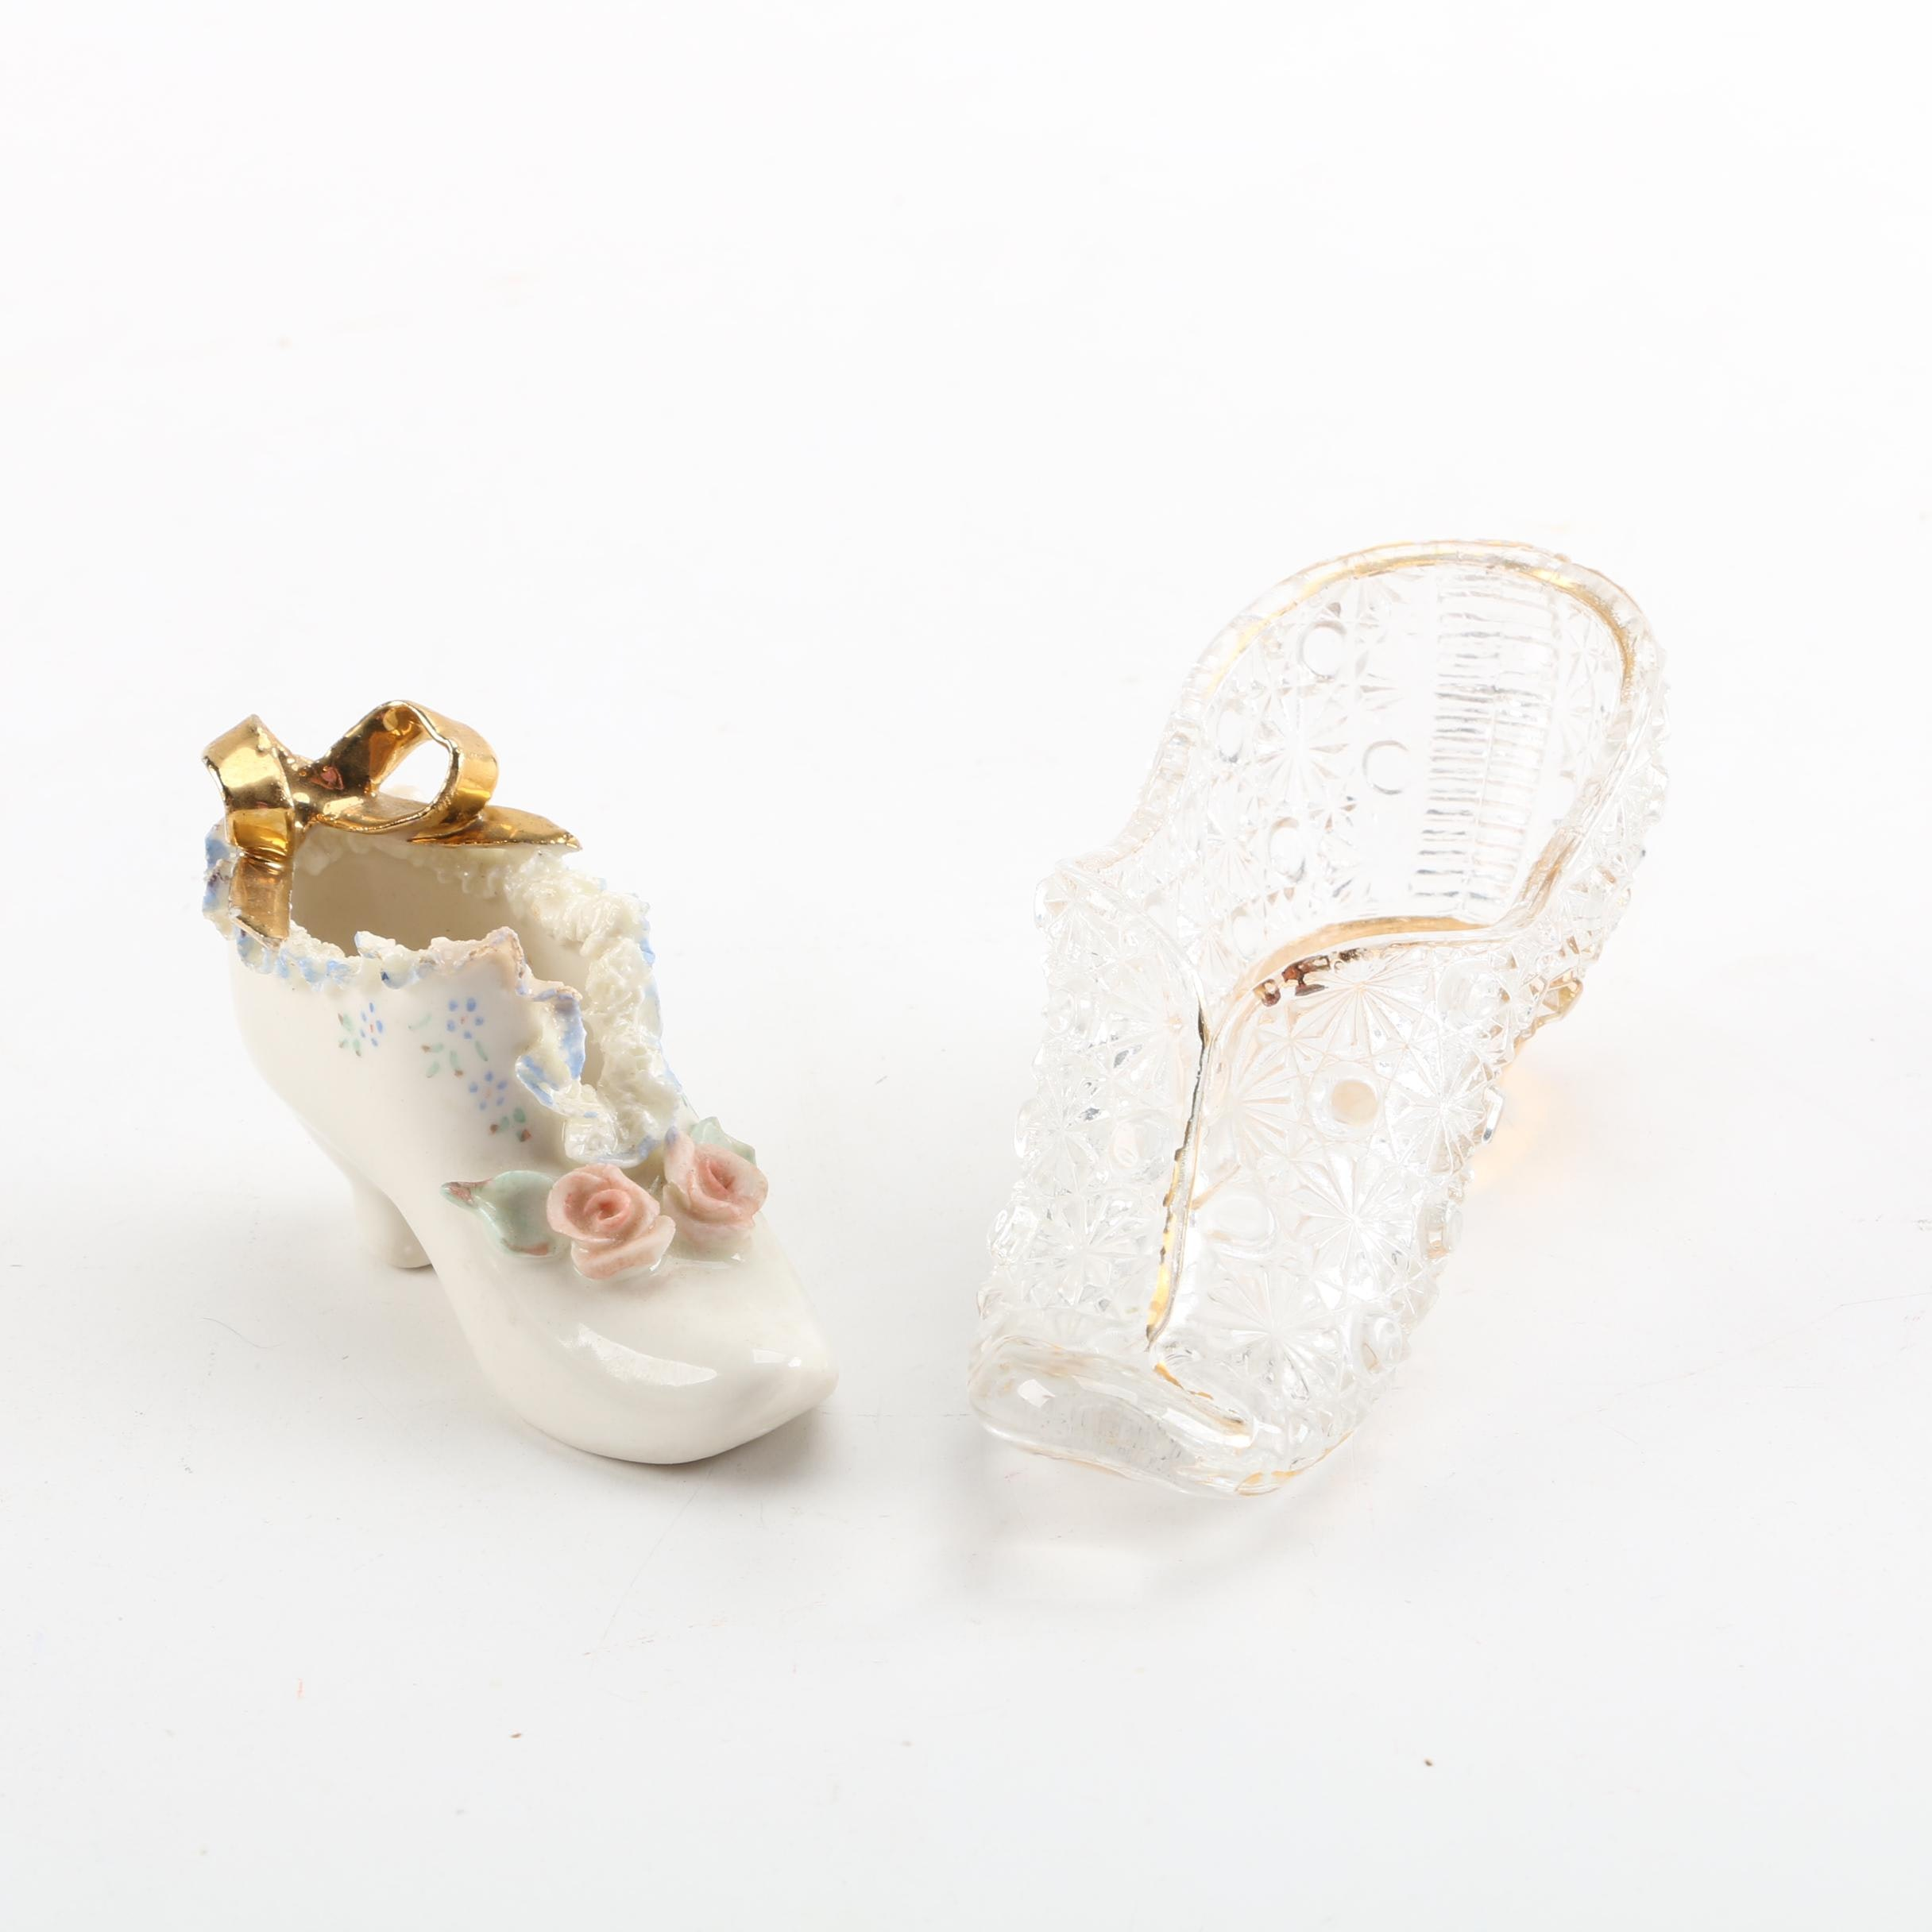 Heirlooms of Tomorrow Porcelain Shoe and Glass Shoe